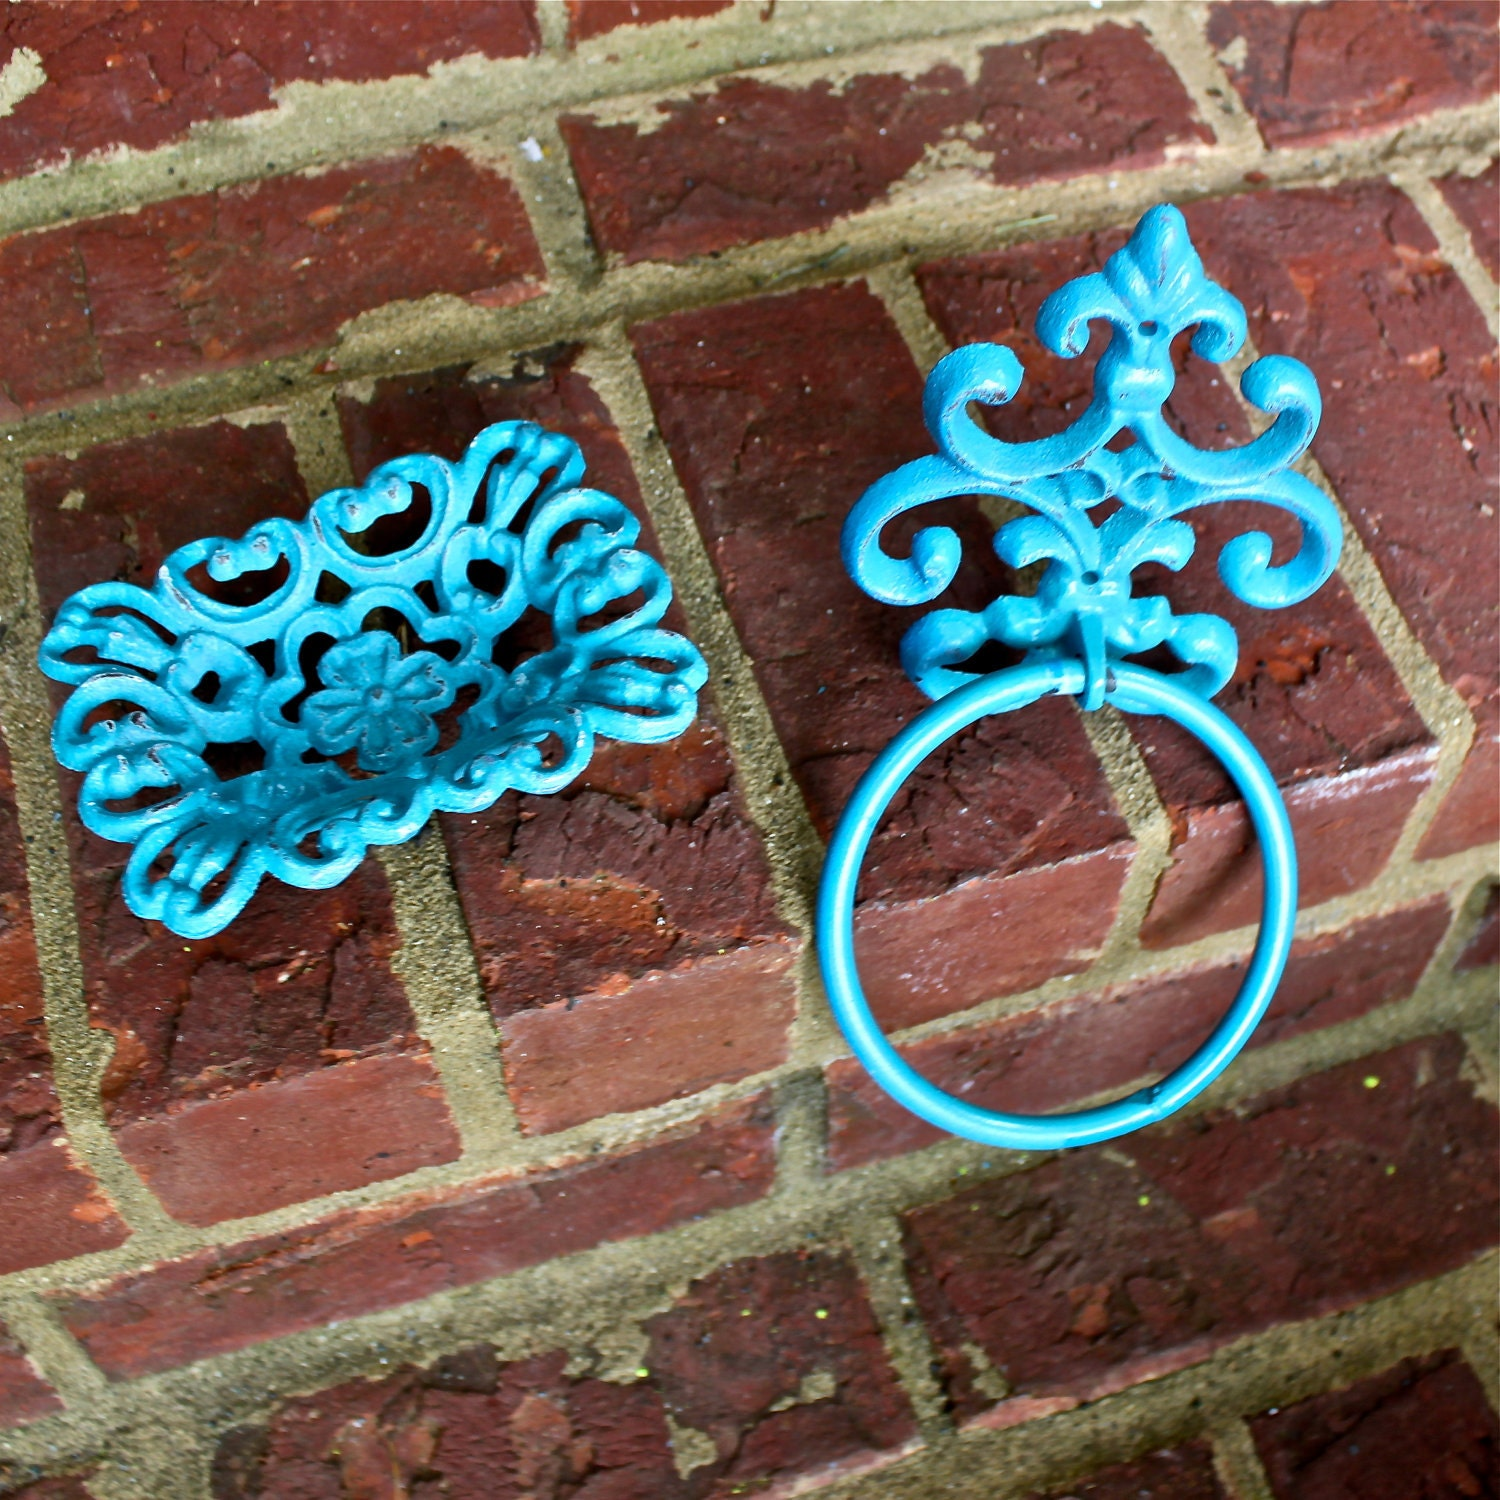 Turquoise Soap Dish/ Towel Ring/ Bright /Hand Painted Cast Iron/ Flower Design/ Bathroom, Kitchen Decor/ Decorative Shabby Chic - AquaXpressions